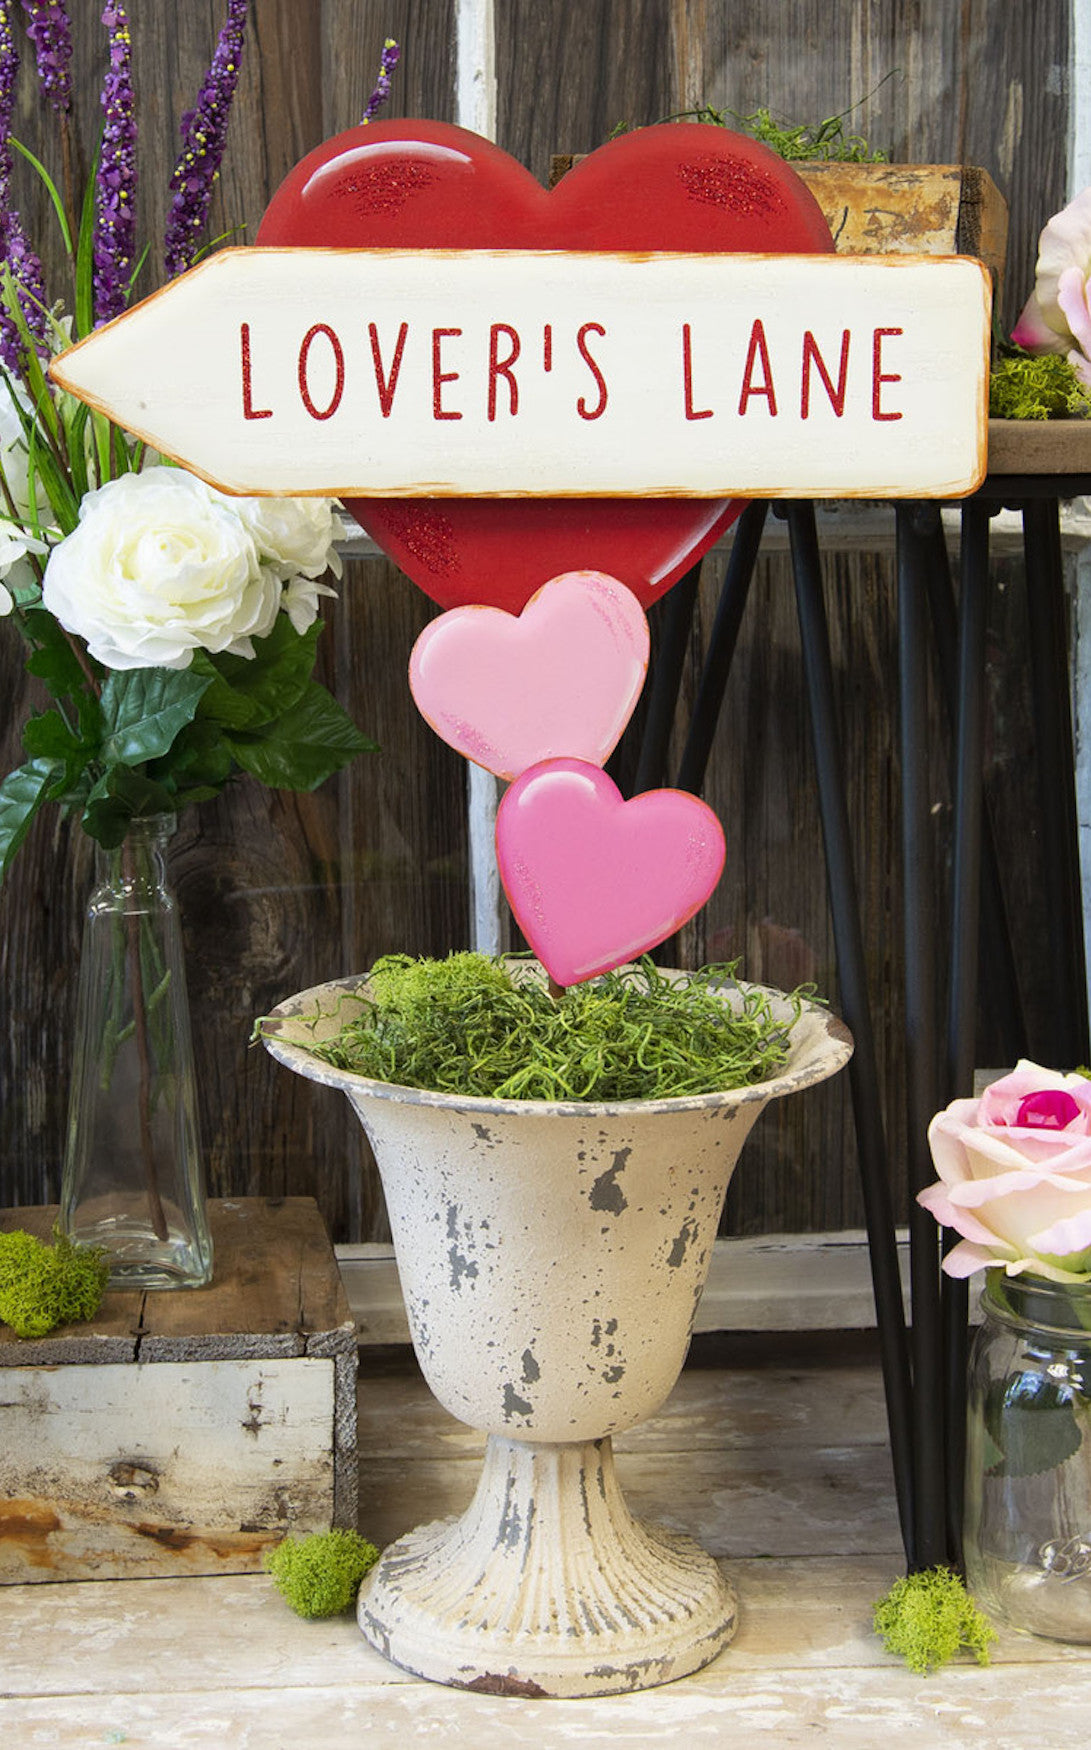 LOVER'S LANE STAKE - INCLUDES ADDITIONAL SHIPPING